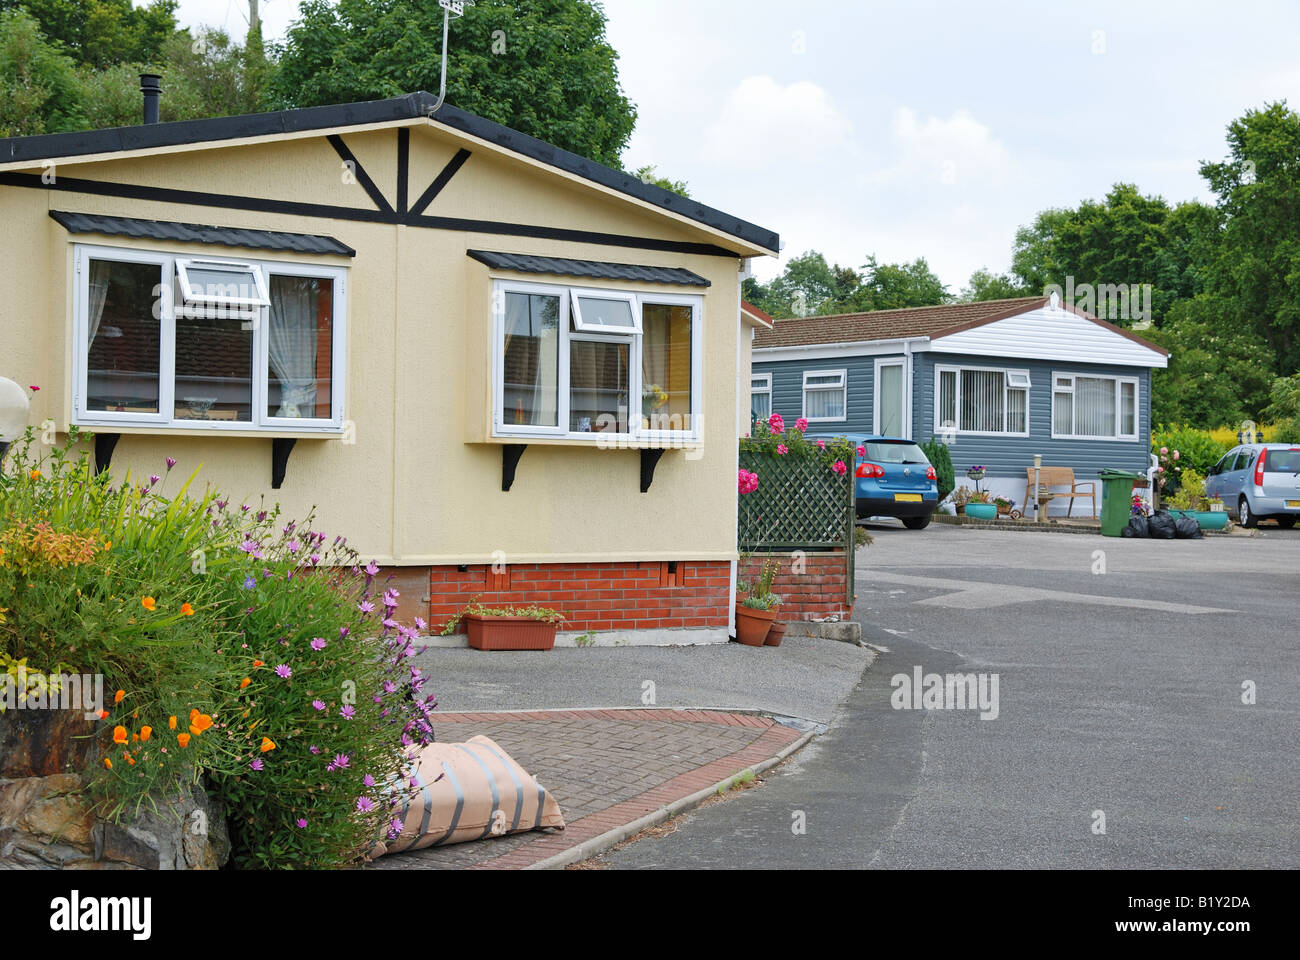 A Mobile Hometrailer Park Near Redruth In Cornwallengland Stock